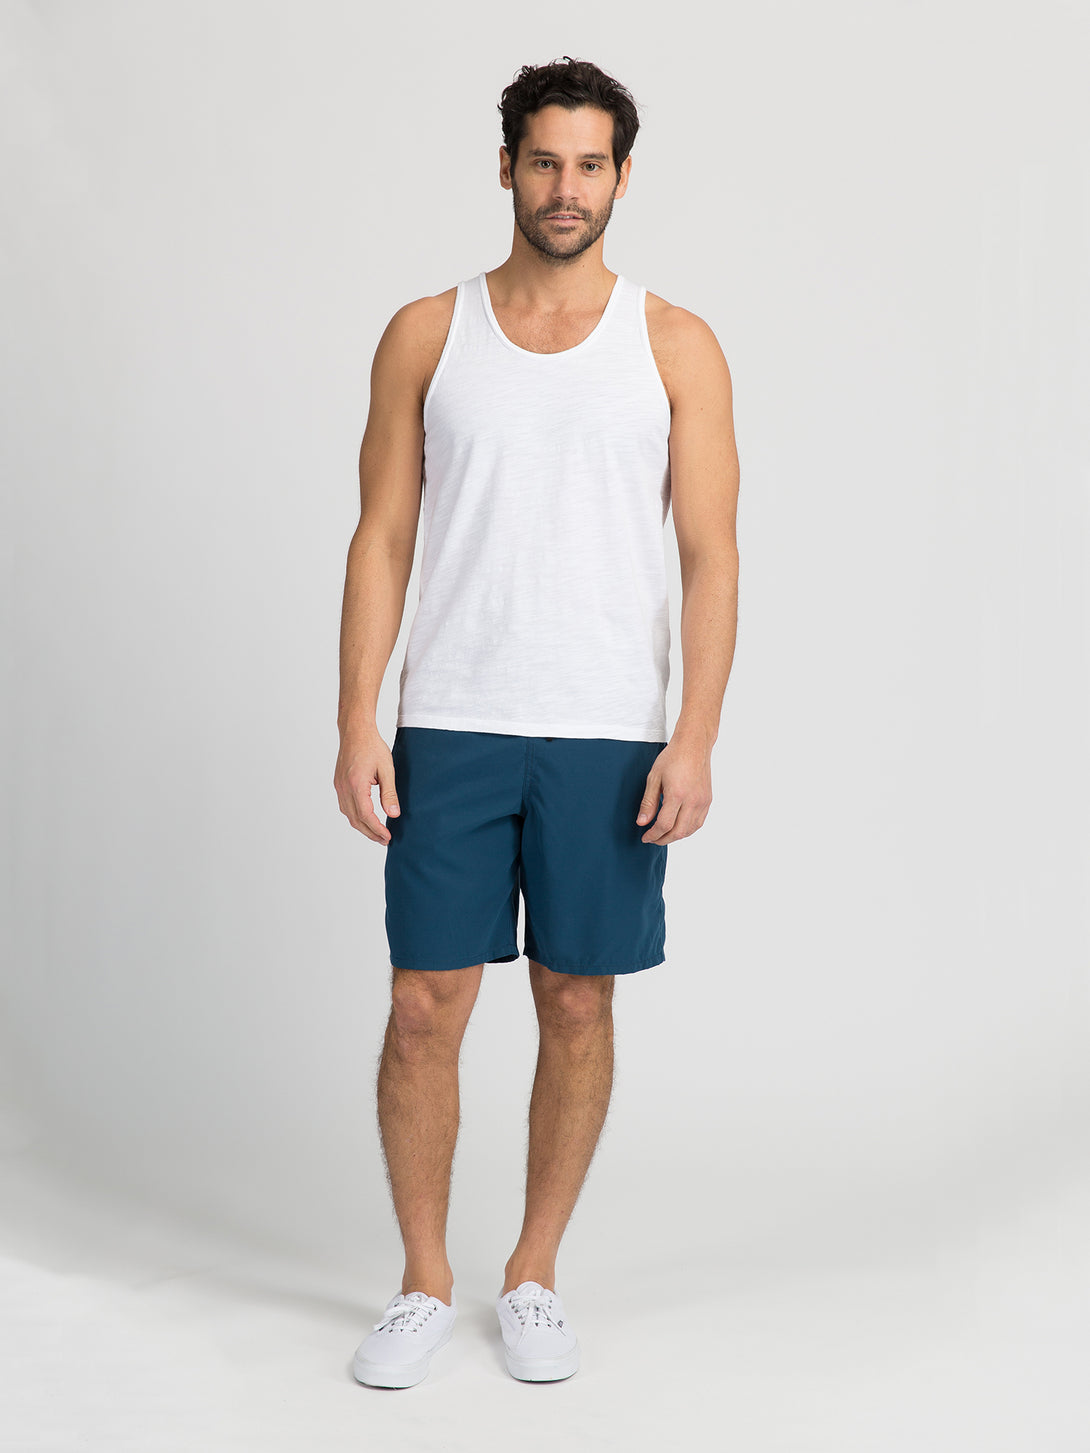 ons garage men's shorts TEAL